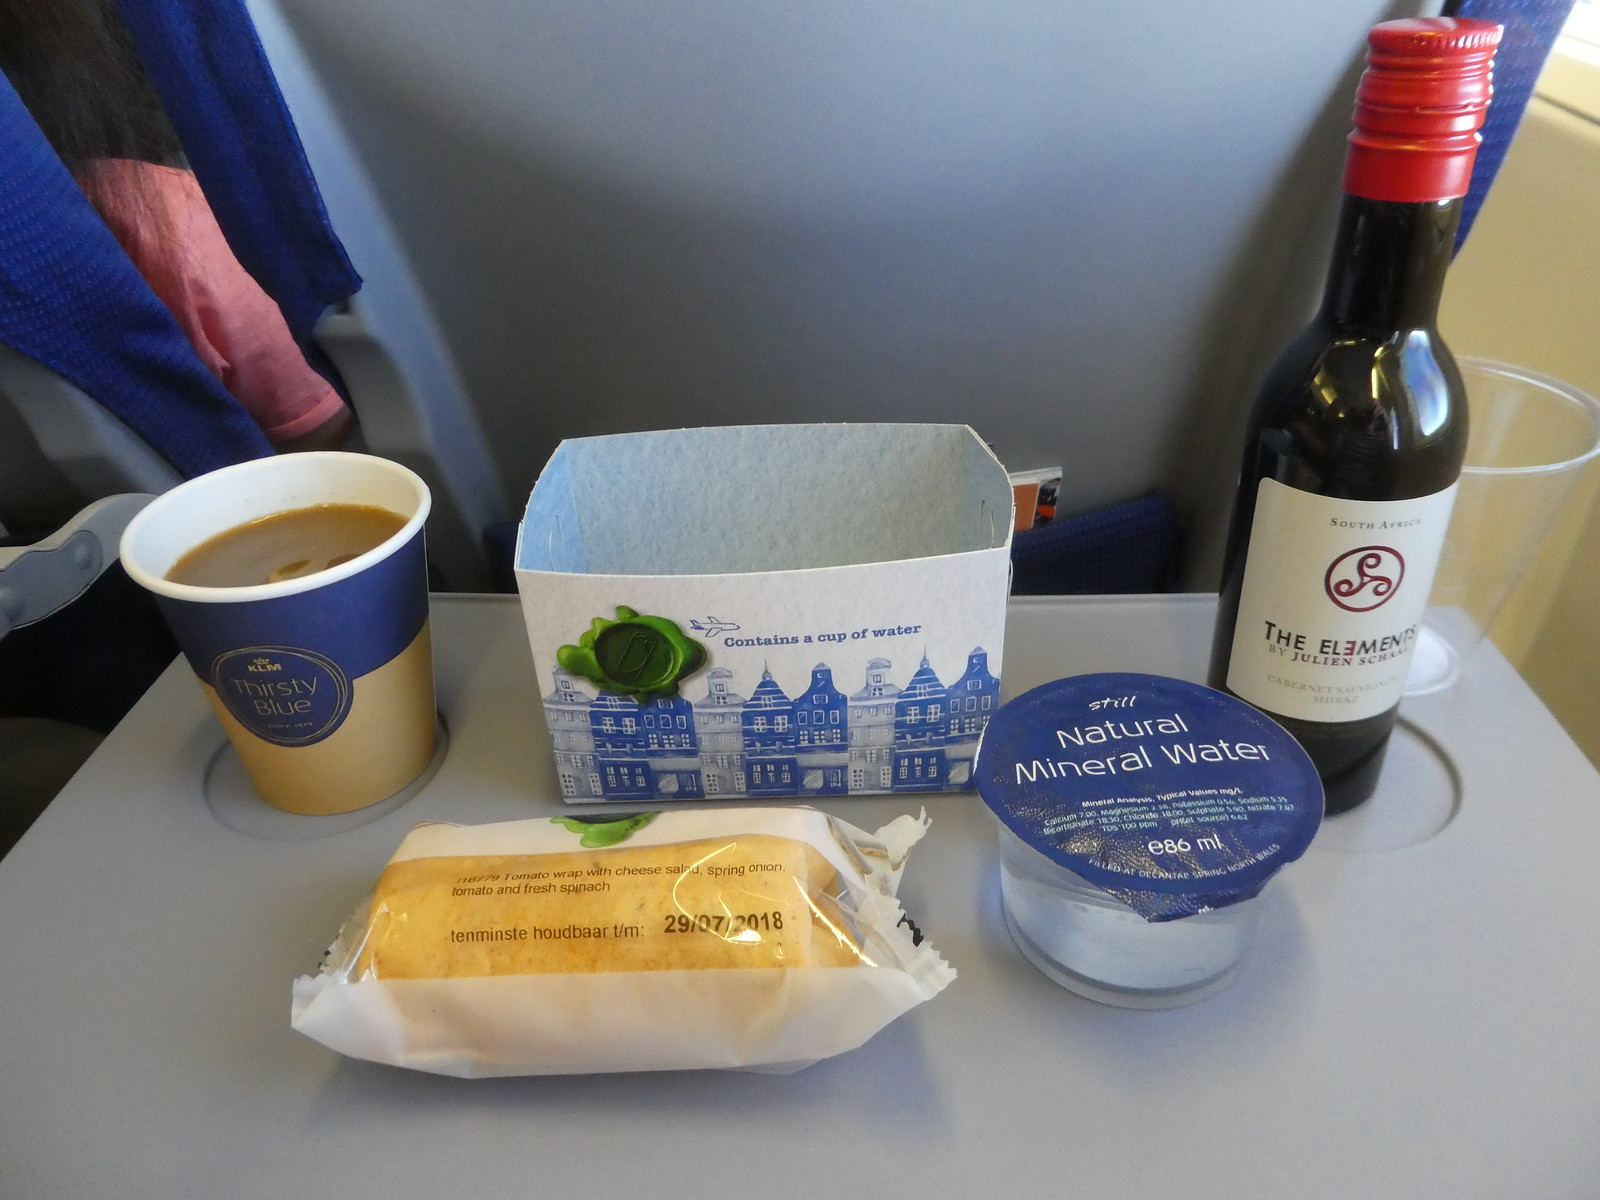 Snack served on our KLM flight from Amsterdam to Manchester